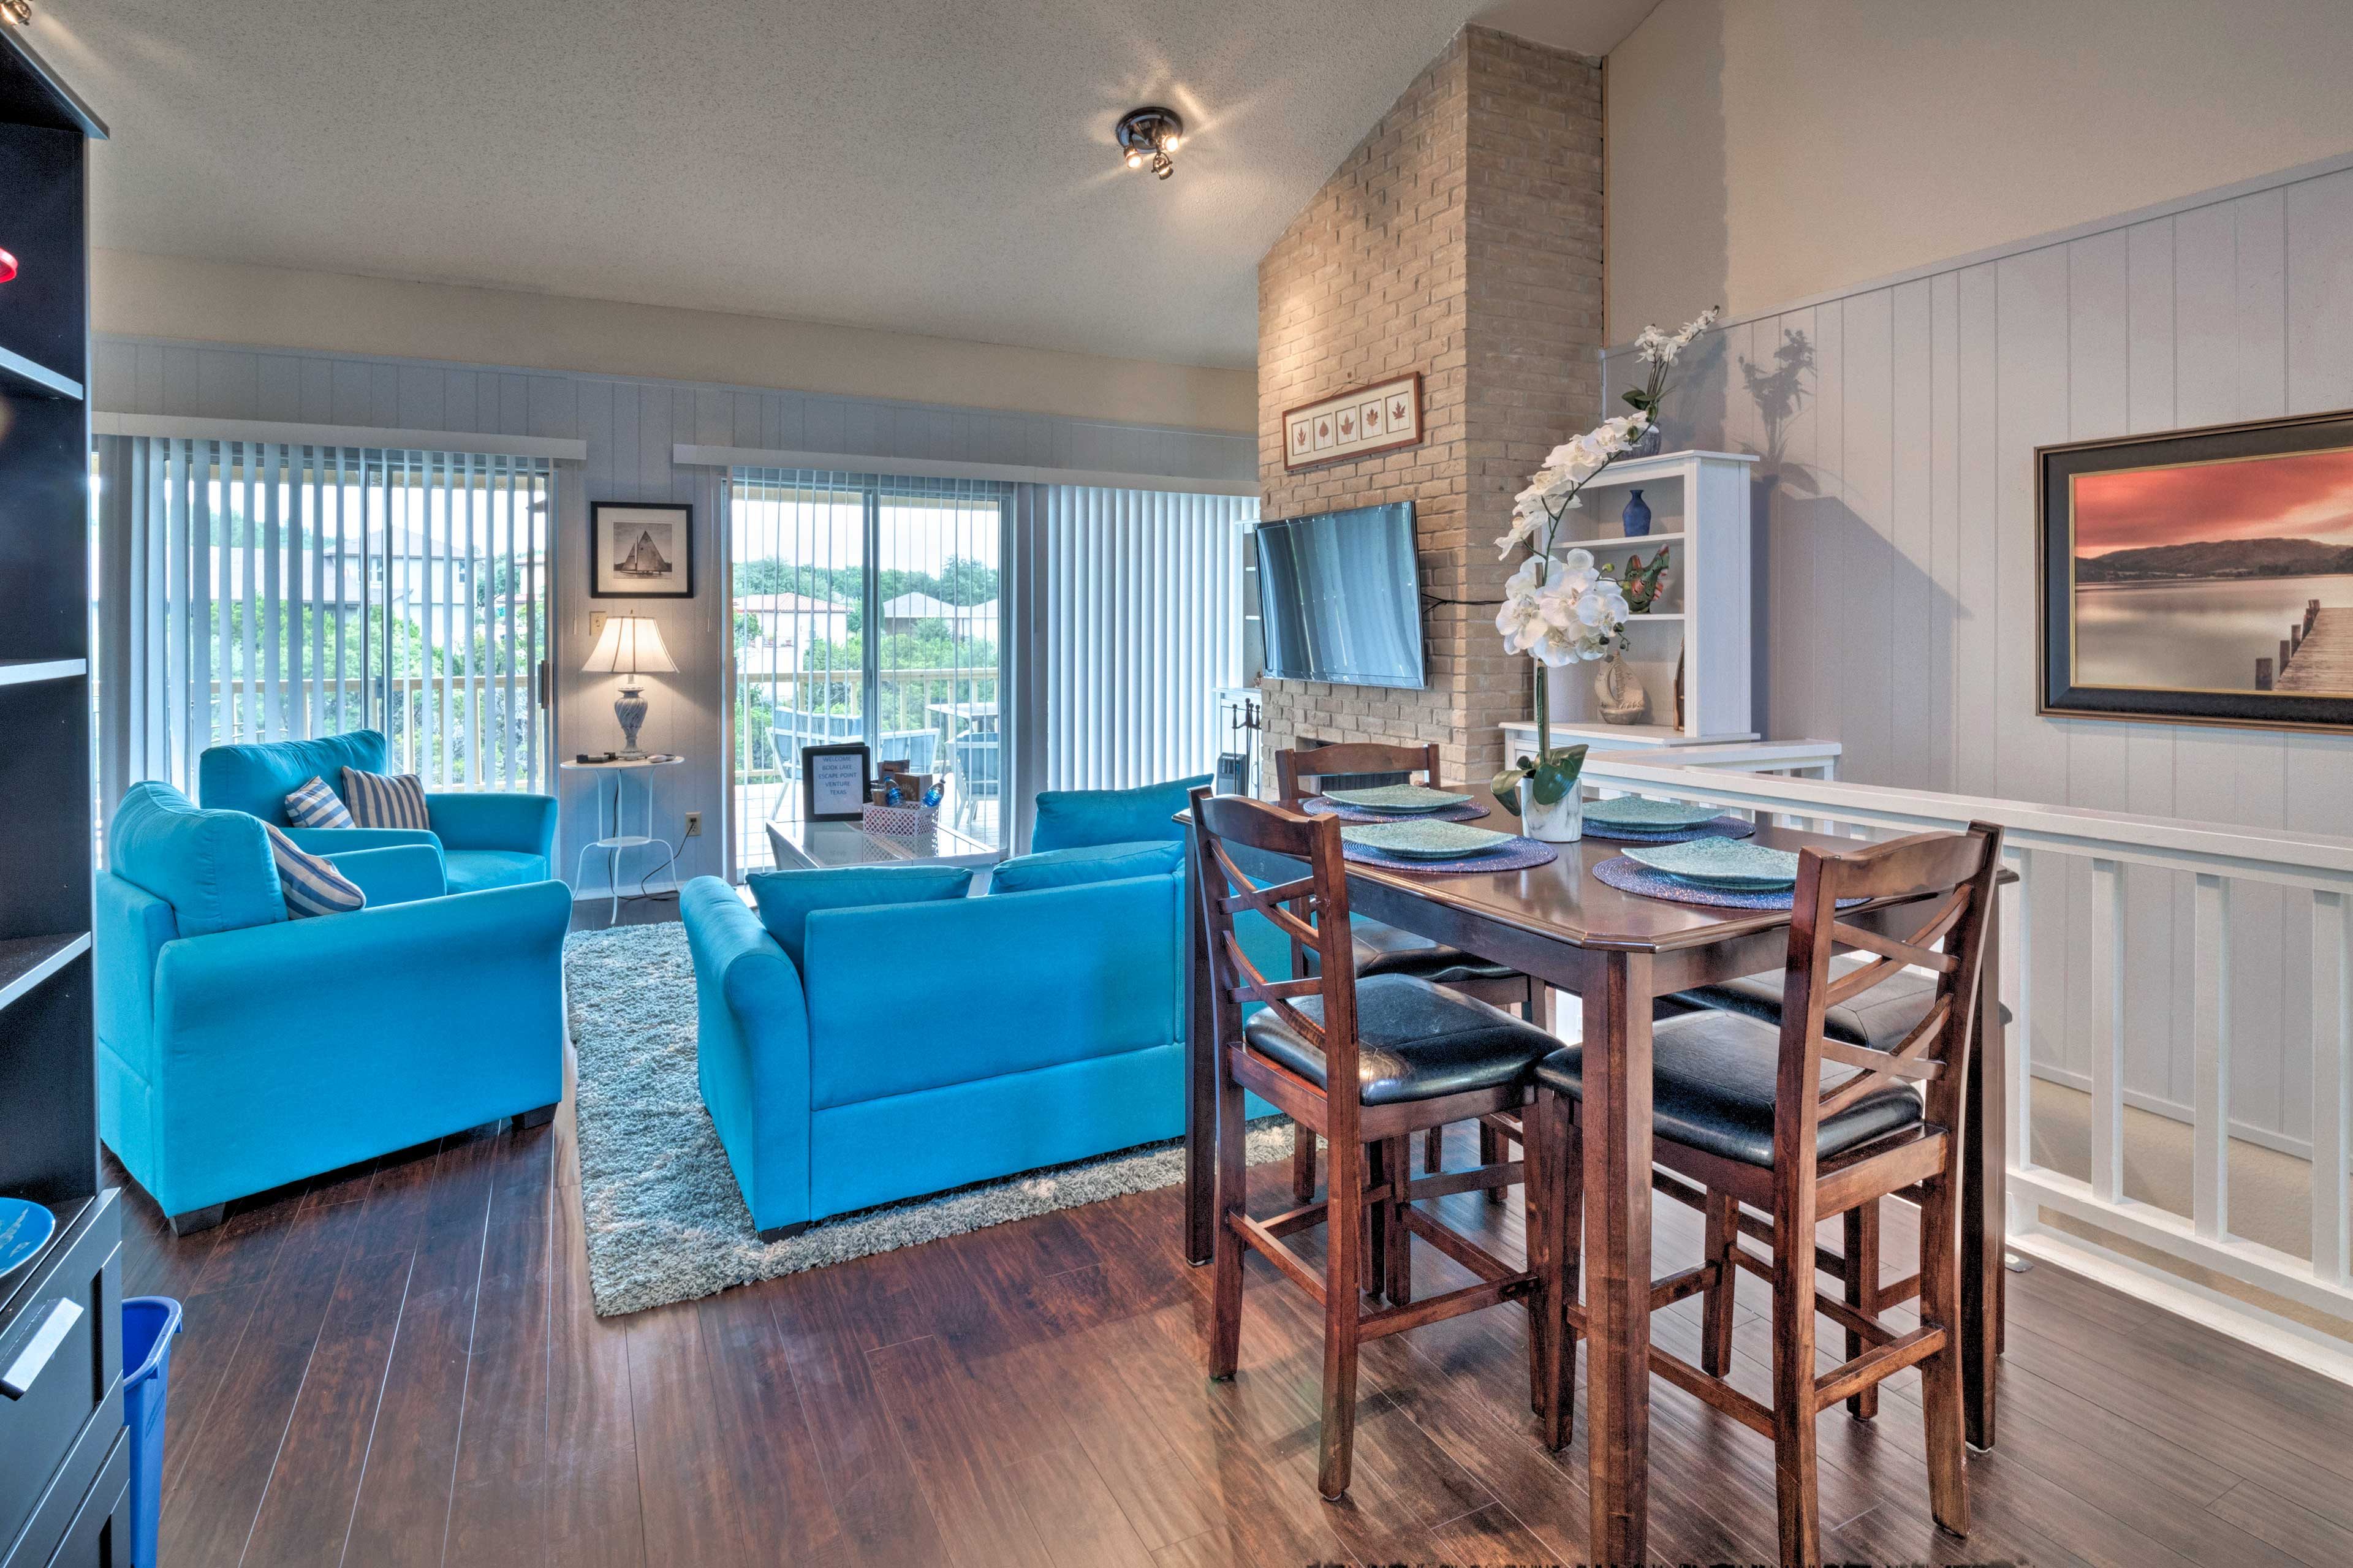 The 1,152-square-foot home boasts tastefully-appointed living space.